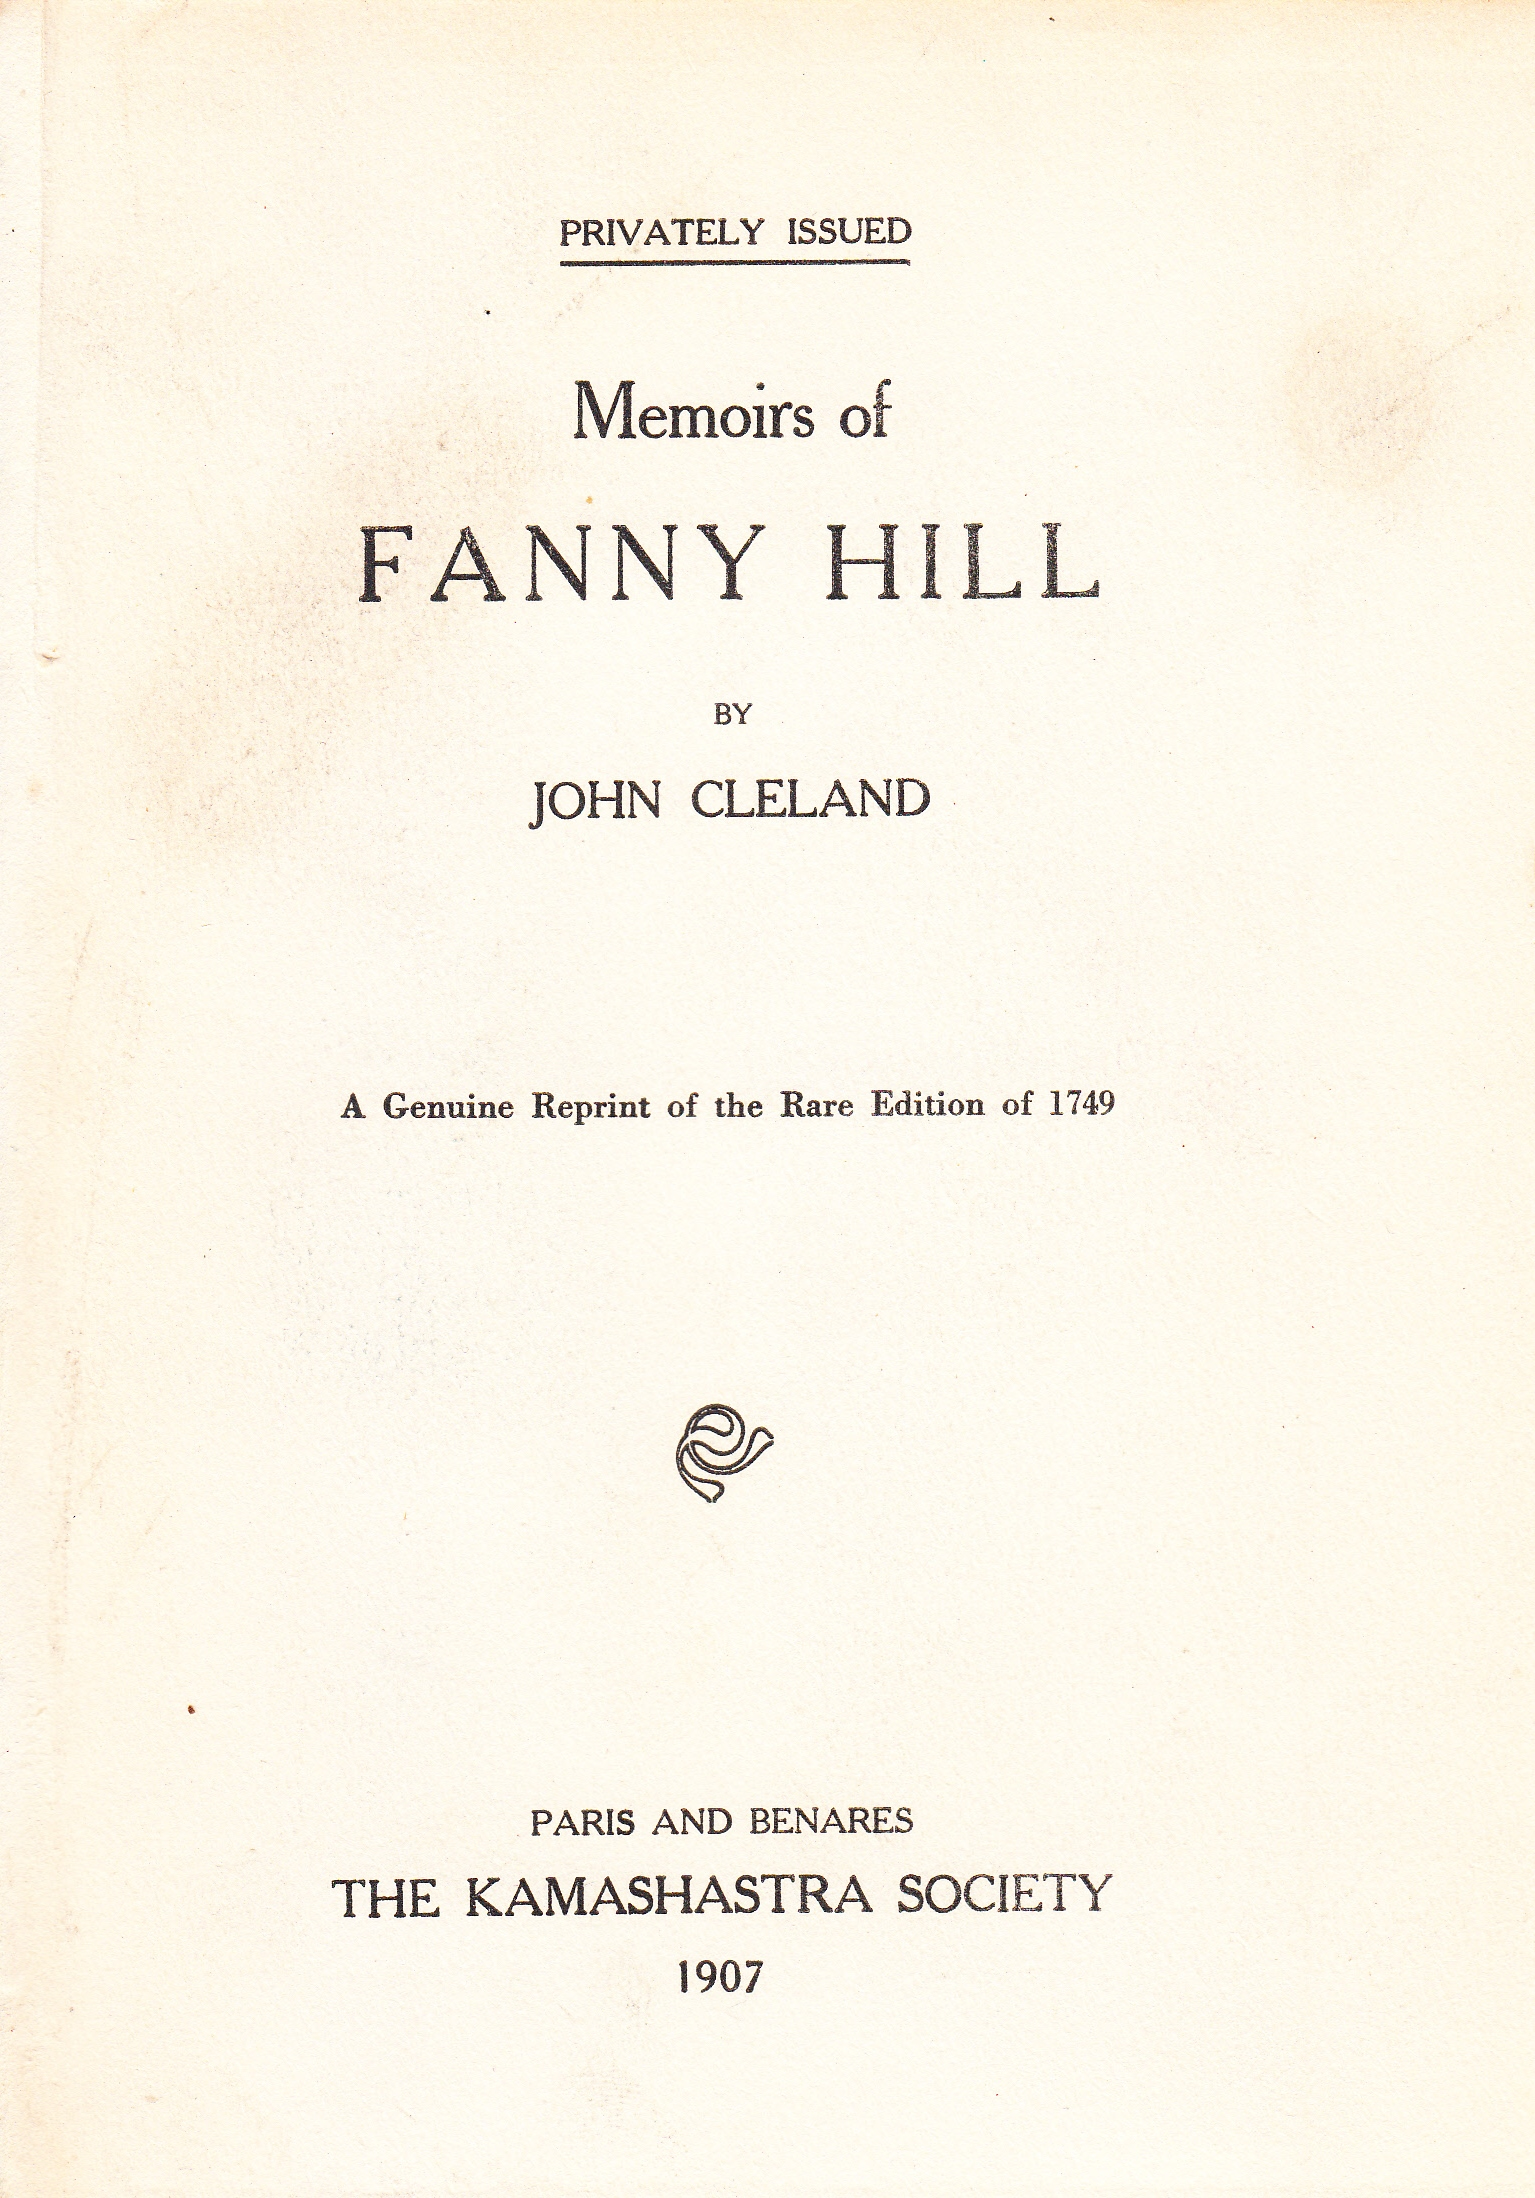 Memoirs of Fanny Hill, by John Cleland, A Genuine Reprint of the Rare Edition of 1749, Paris and Benares, The Kamashastra Society 1907